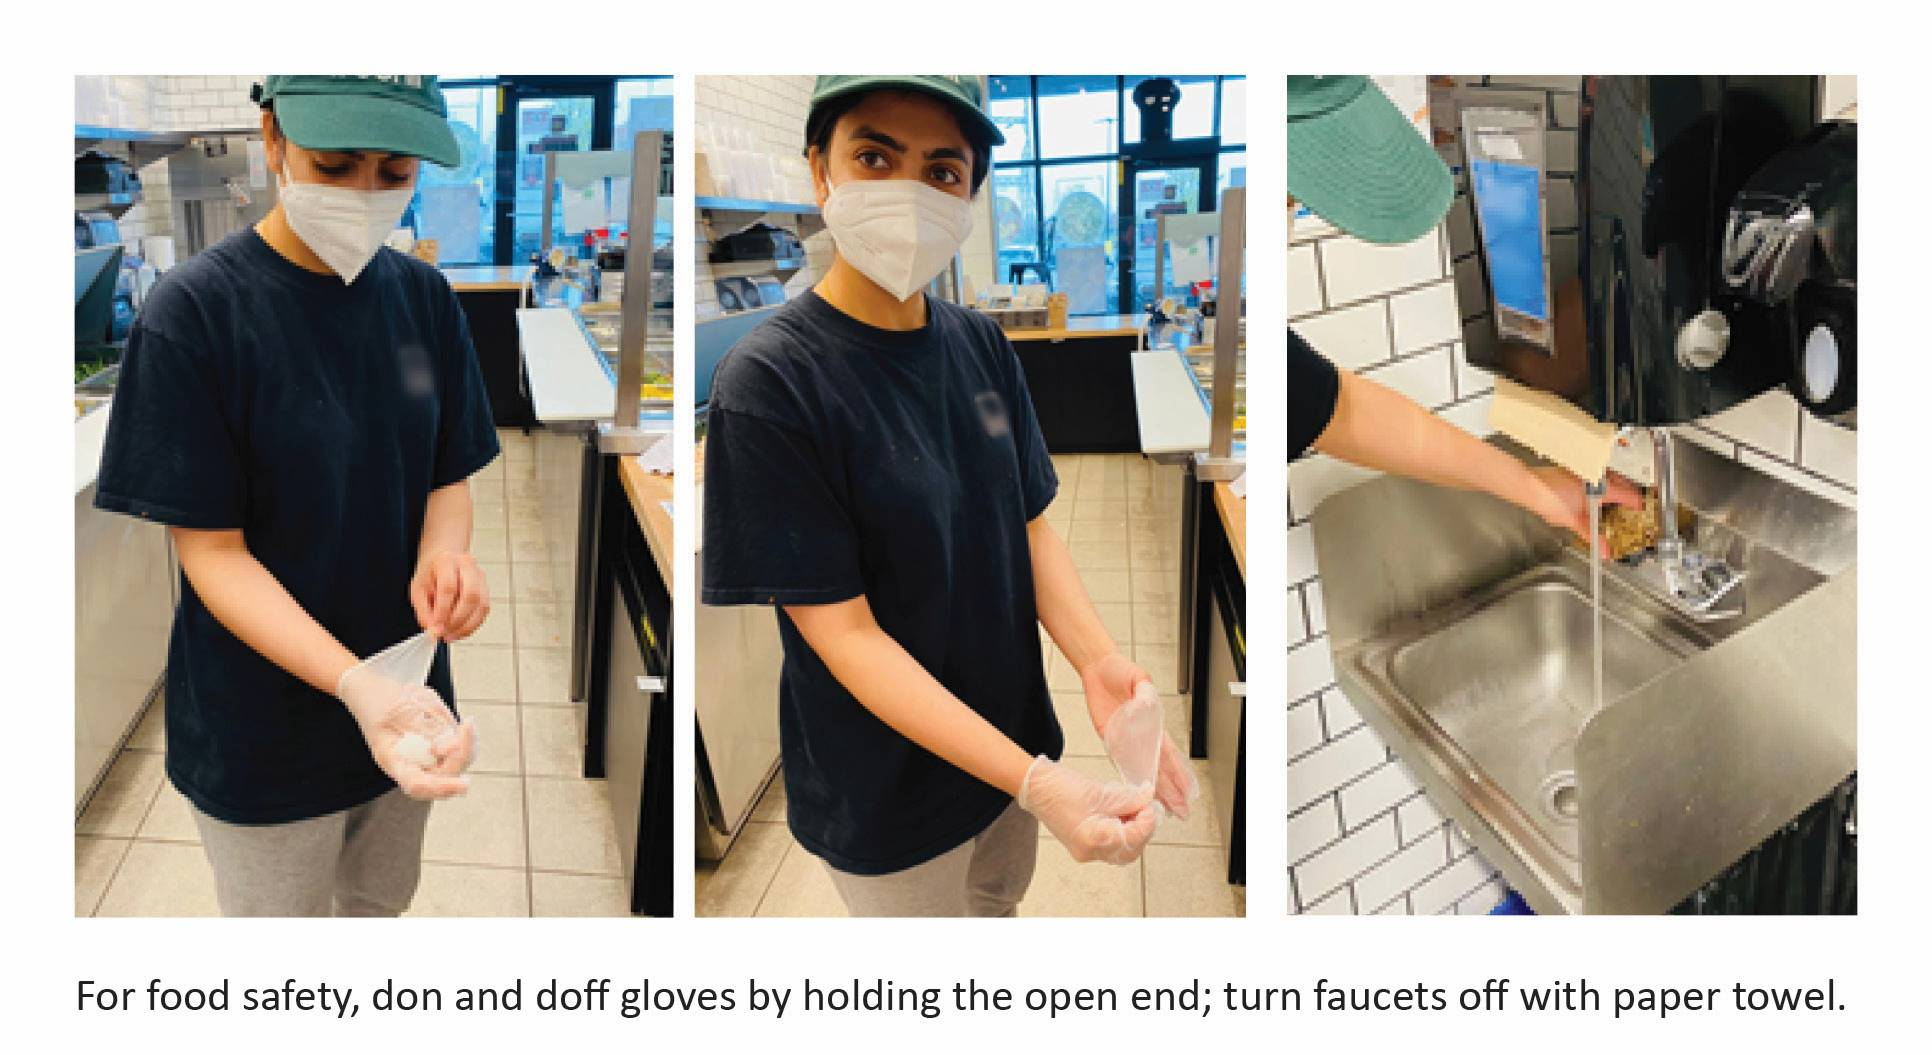 For food safety, don and doff gloves by holding the open end; turn faucets off with a paper towel.